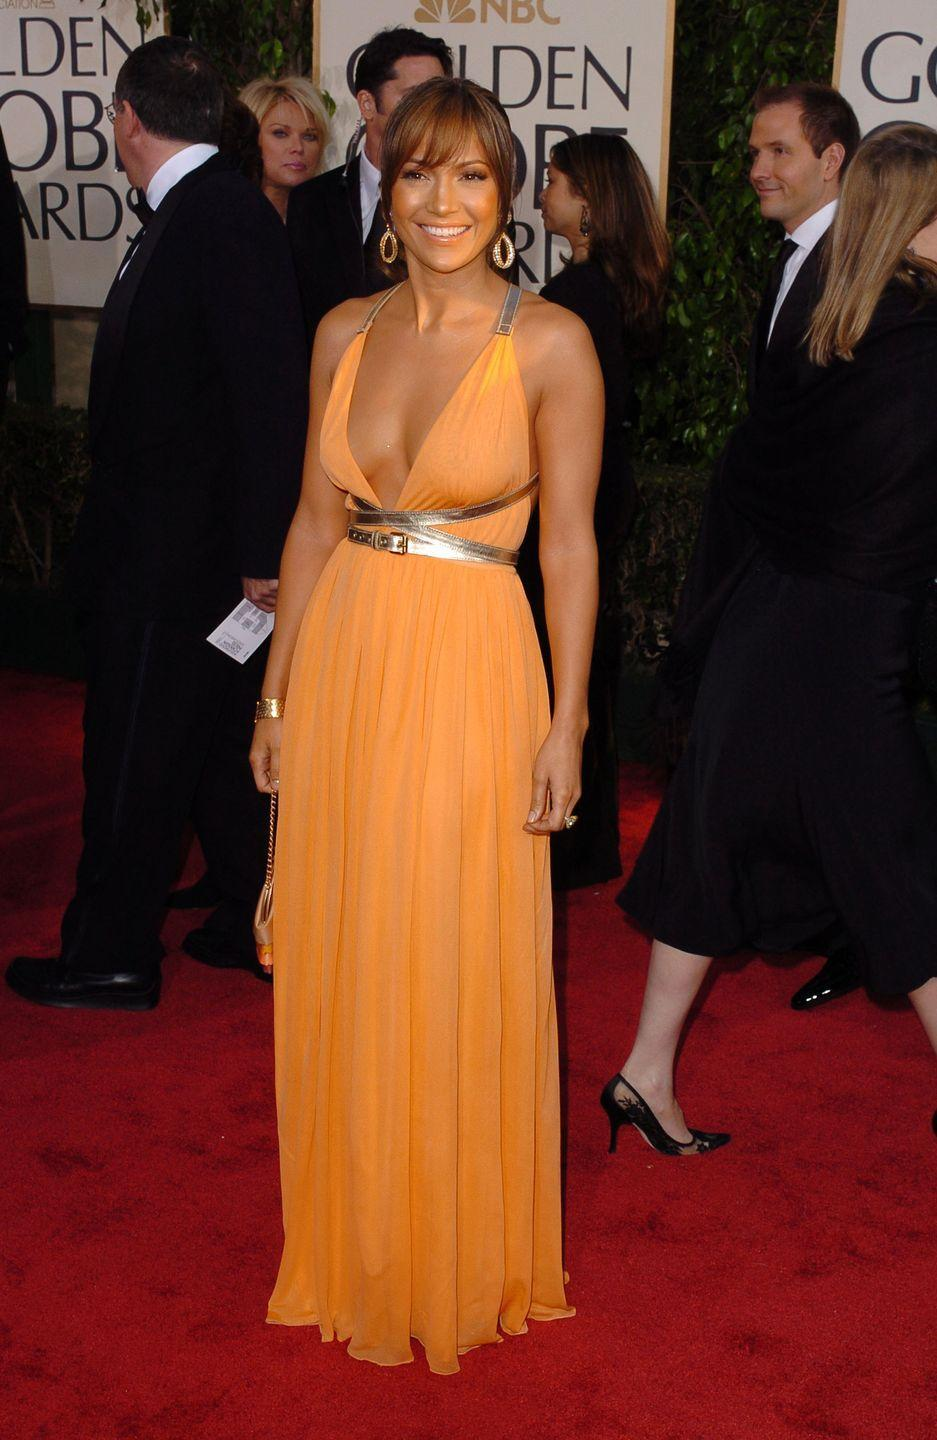 <p>In 2004, J. Lo was a ray of sunshine in this plunging Michael Kors dress featuring a gold belt cinched at the waist.</p>